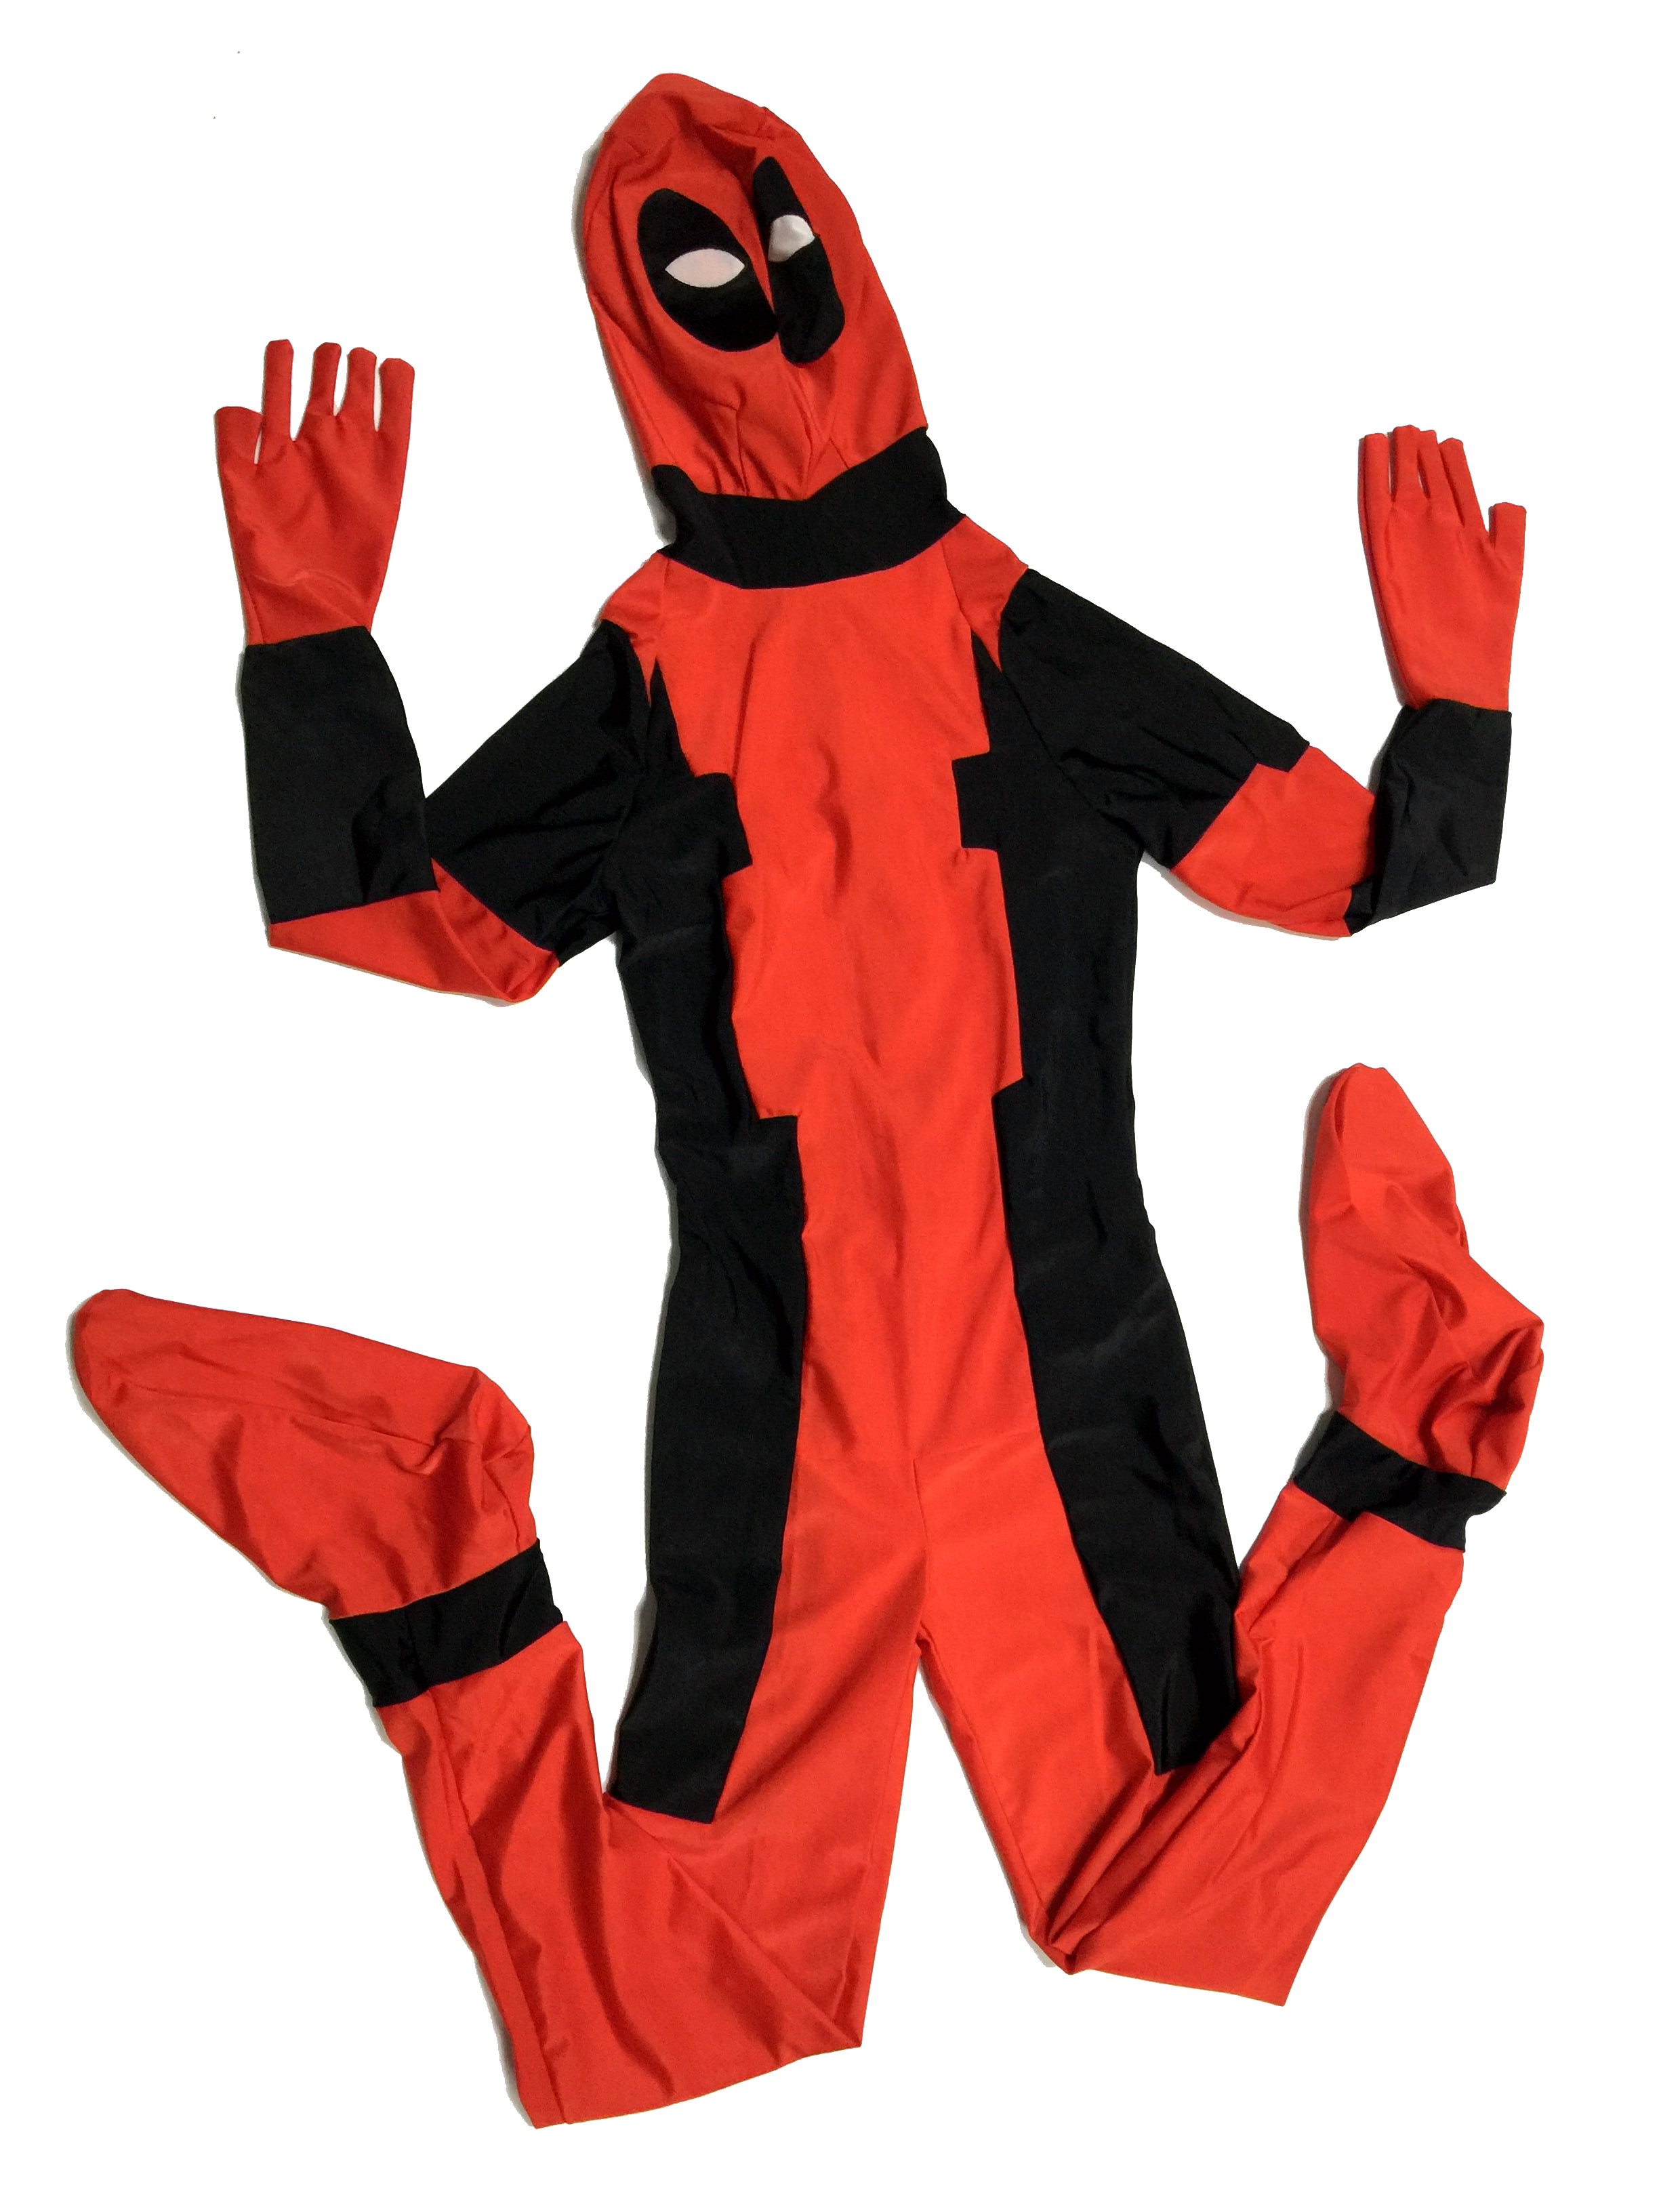 deadpool Halloween Costume For Kidsmask cosplay costumes for children boys fancy dress Lycra Spandex Zentai anime fantasia child